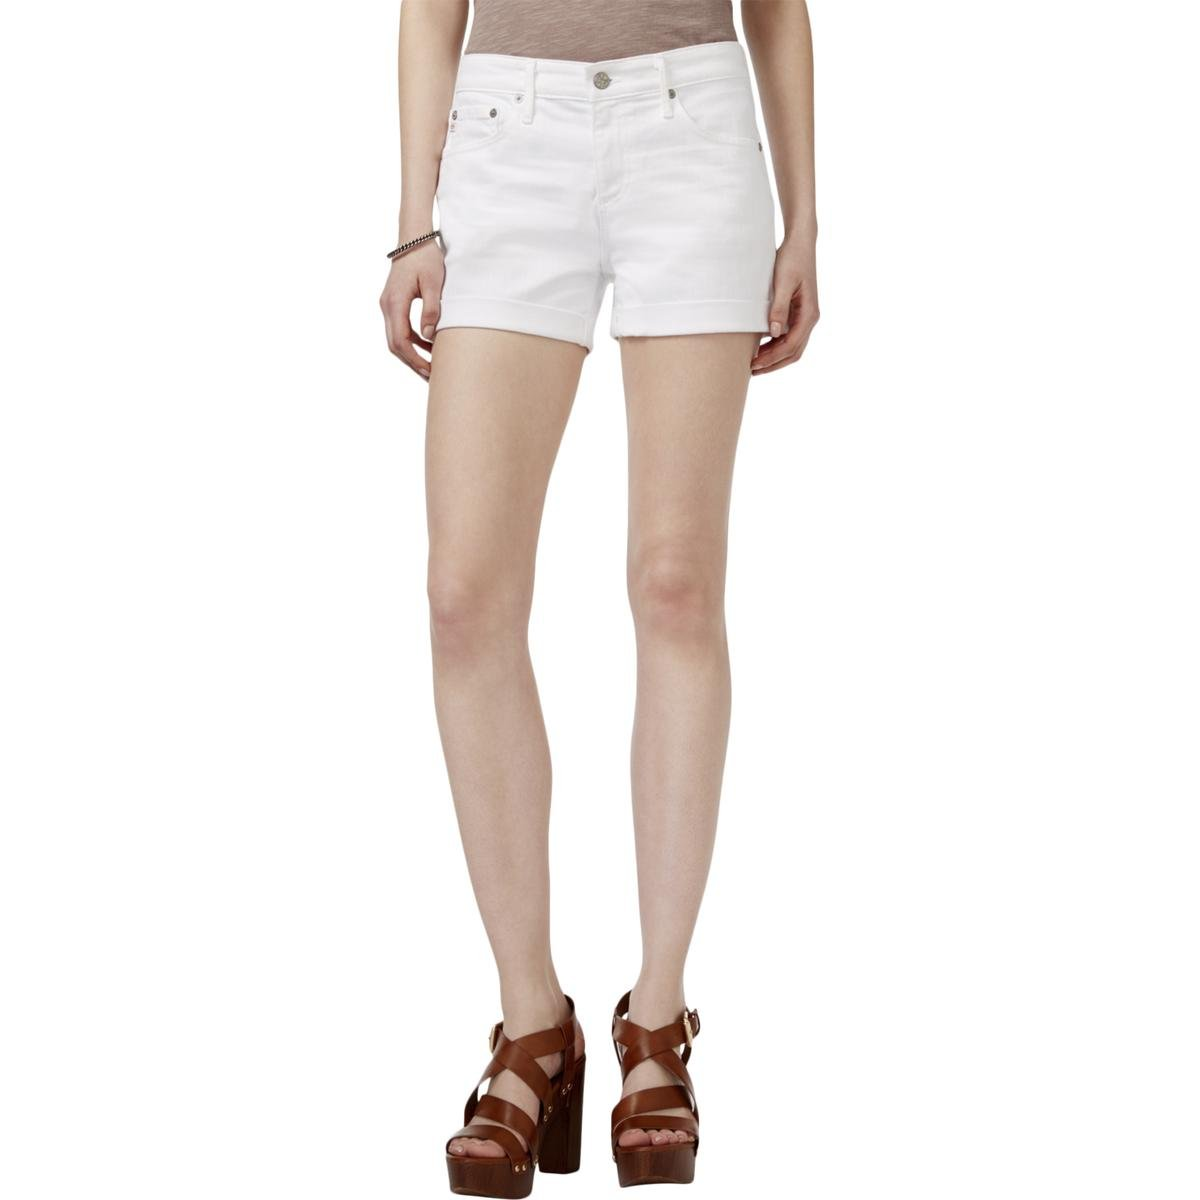 AG Adriano Goldschmied Women's Hailey Ex-Boyfriend Roll-Up Short In One-Year White OSD1489